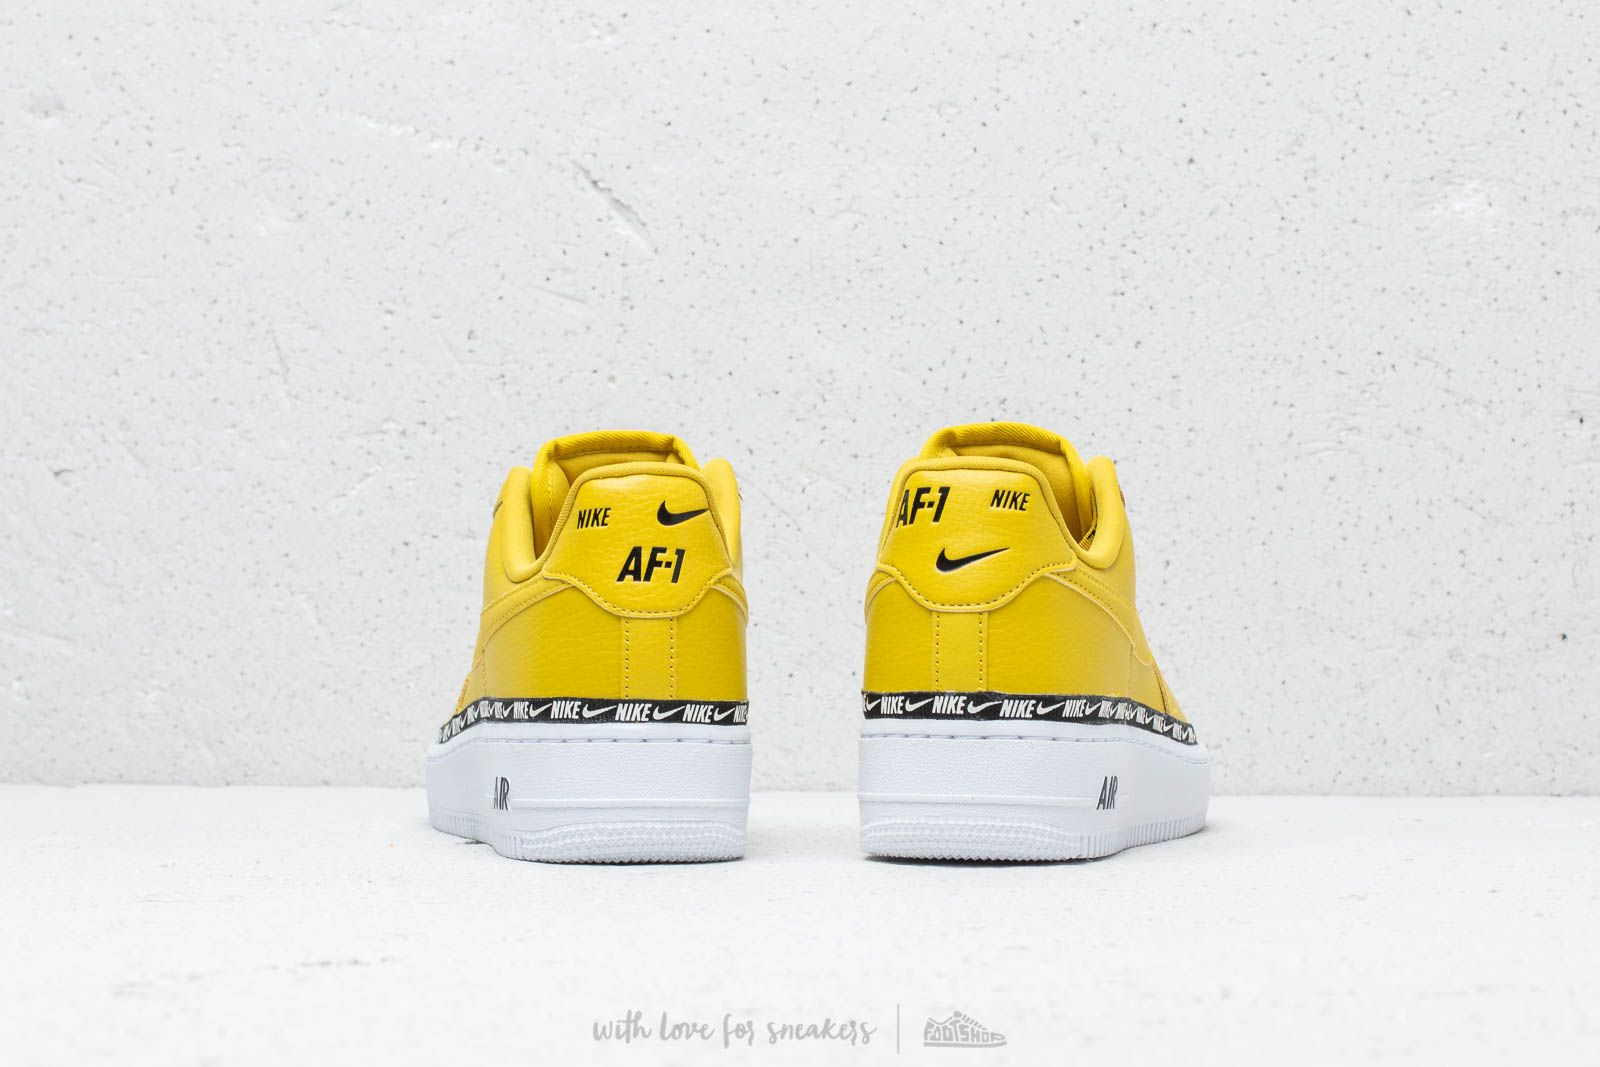 Nike Wm's Air Force 1 '07 SE Premium Bright Citron Bright Citron | Footshop